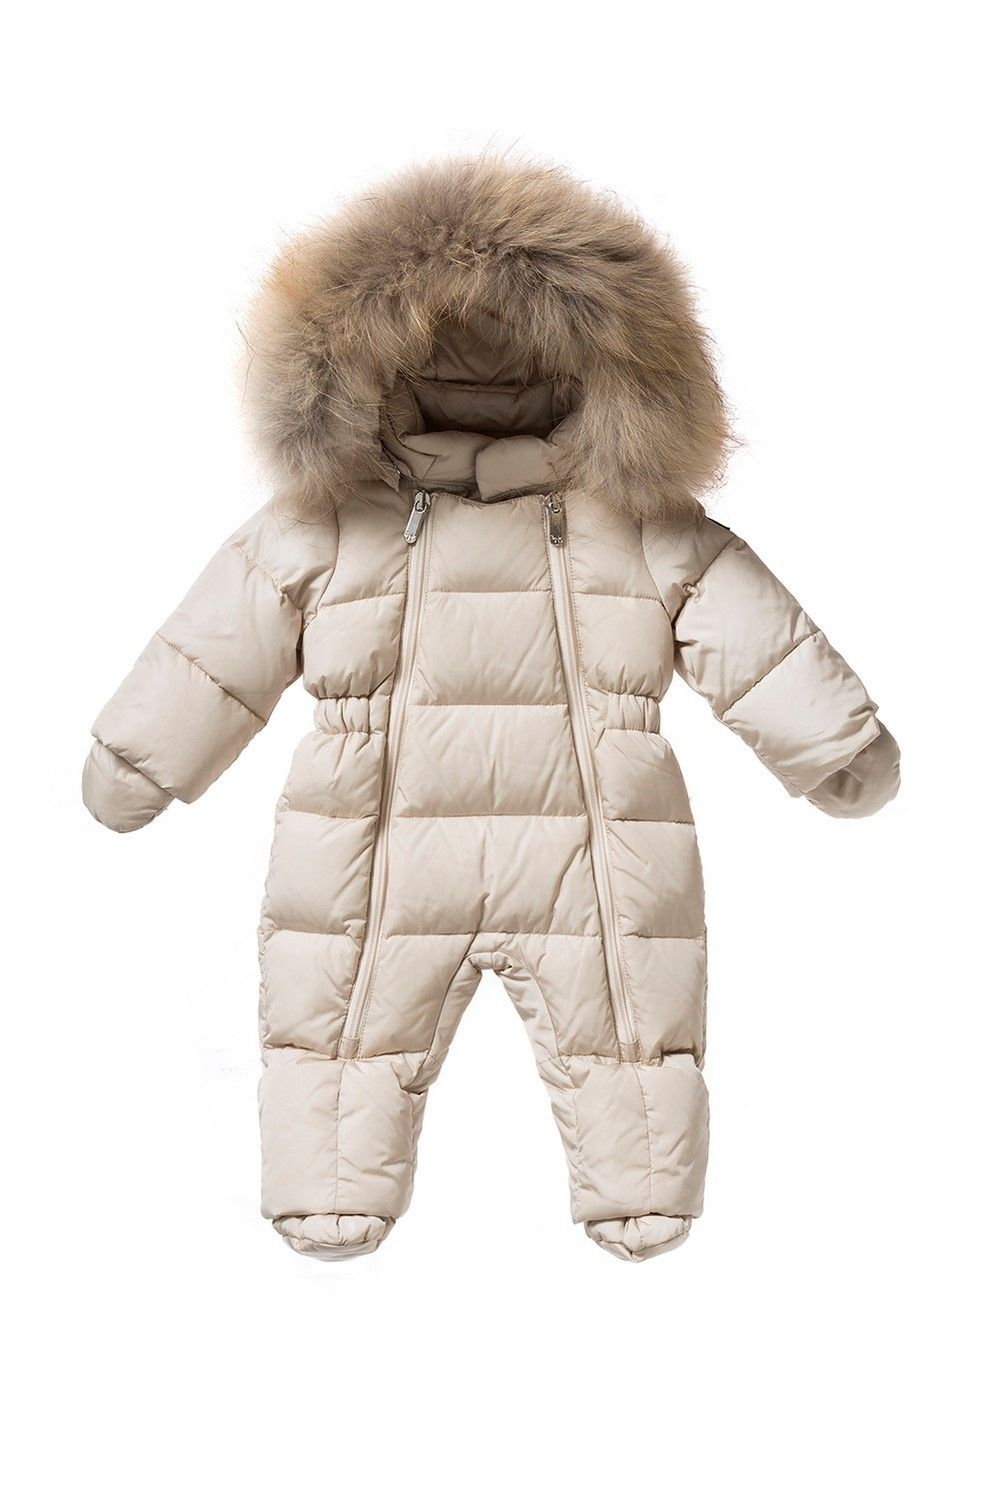 Italian Luxury DOWN-FILLED SNOWSUIT WITH FUR IN BEIGE AND SAND  f7b277f4537e